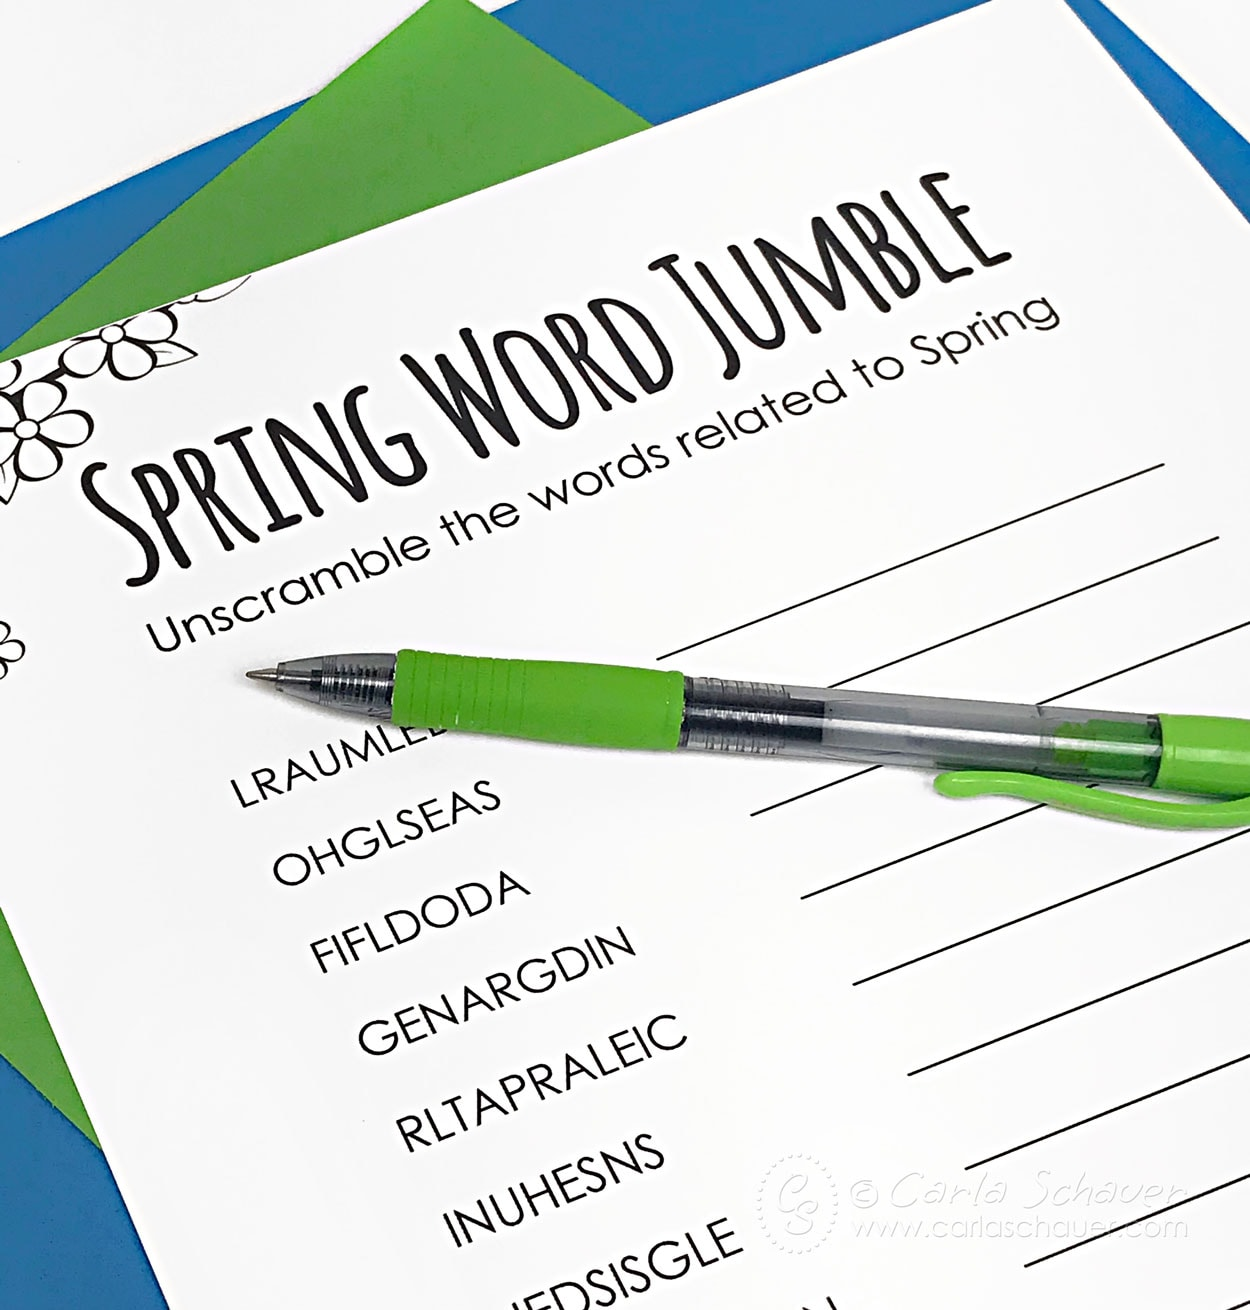 Spring Word Jumble Puzzle with green pen.